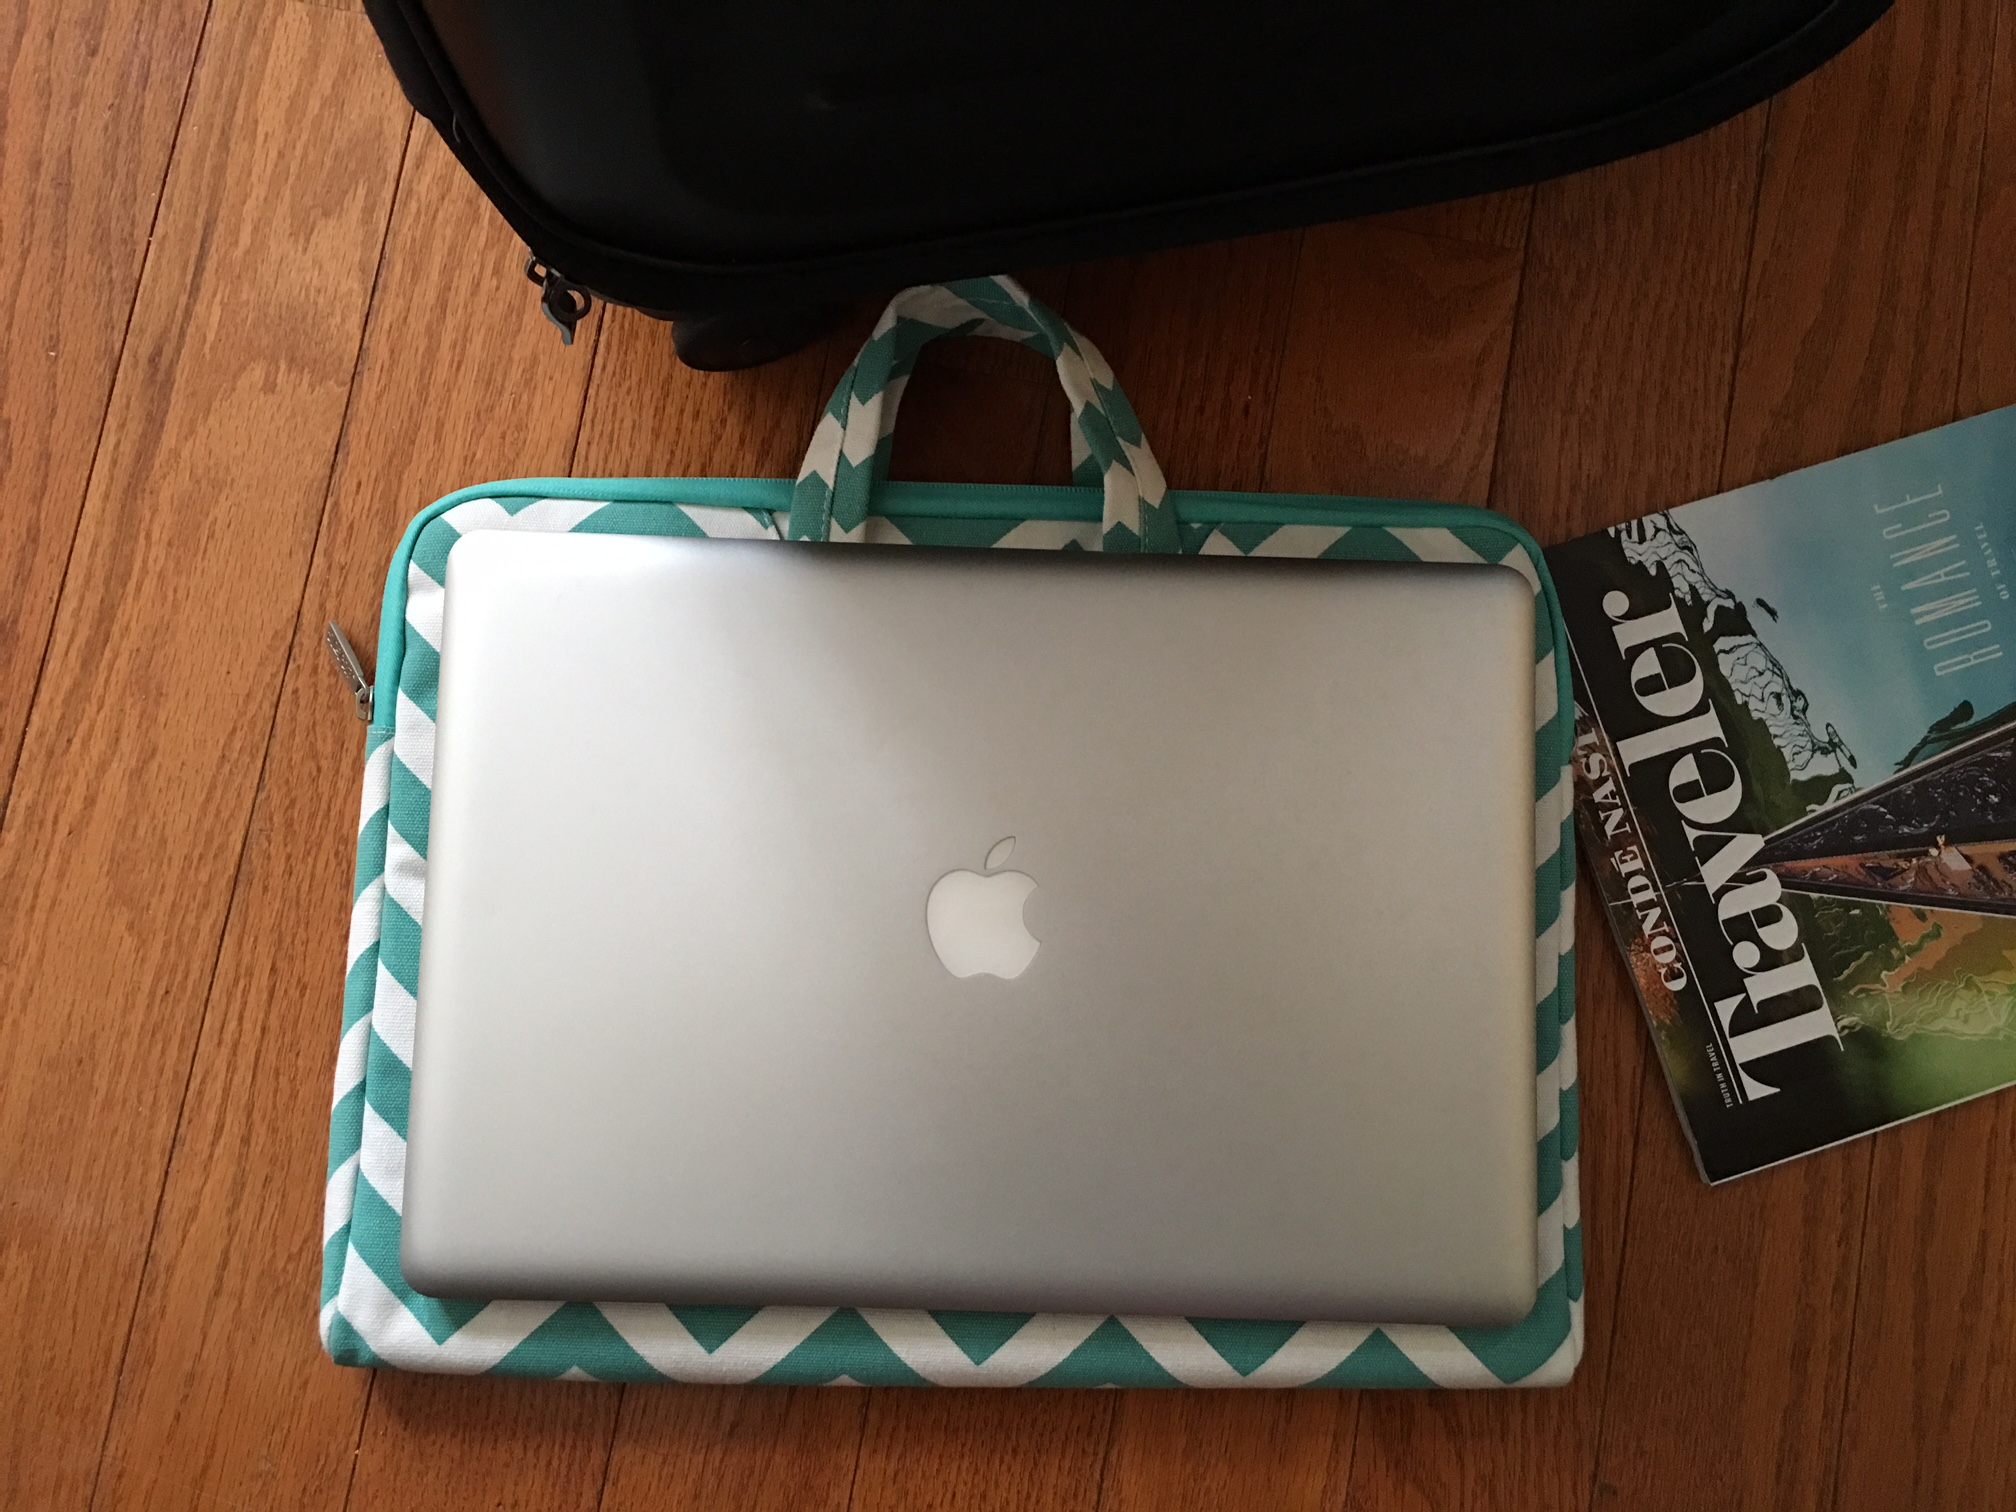 Mosiso laptop sleeve review